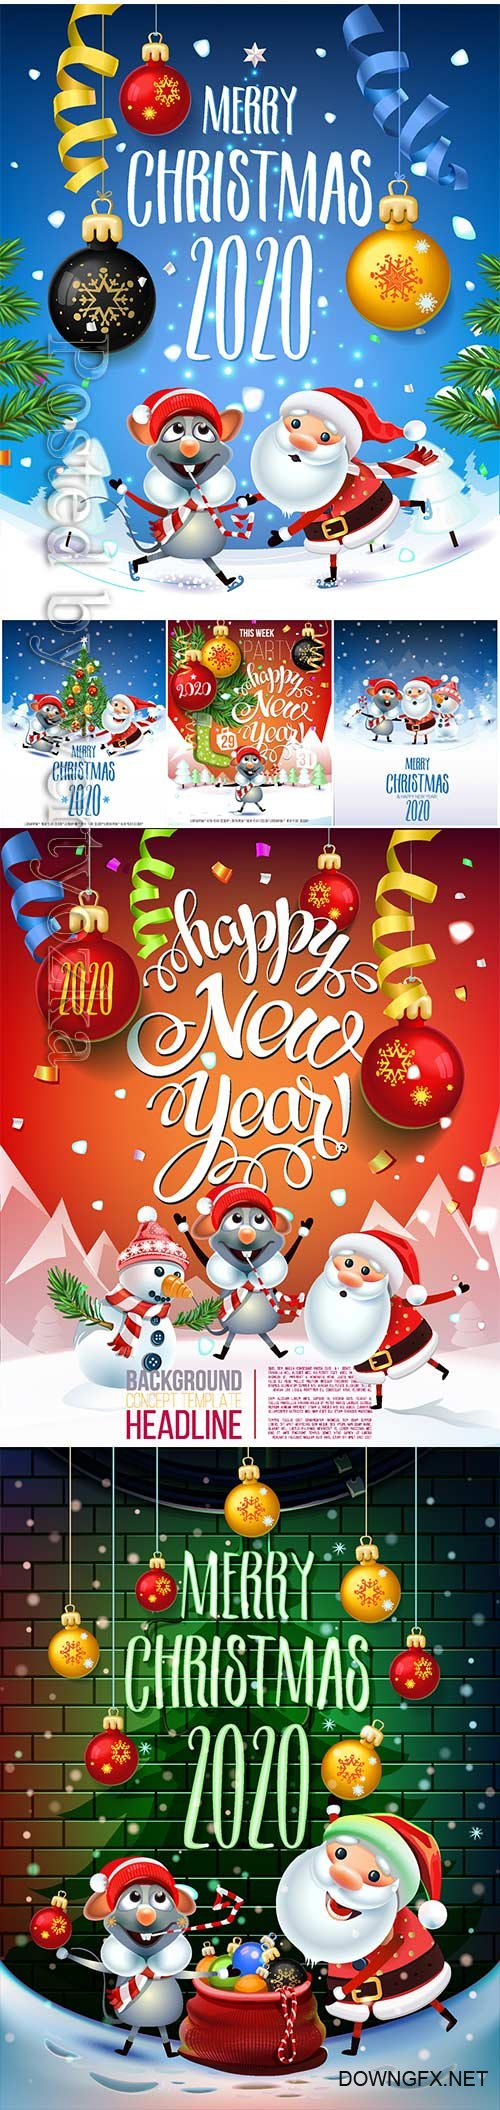 2020 Merry Chistmas and Happy New Year vector illustration # 8